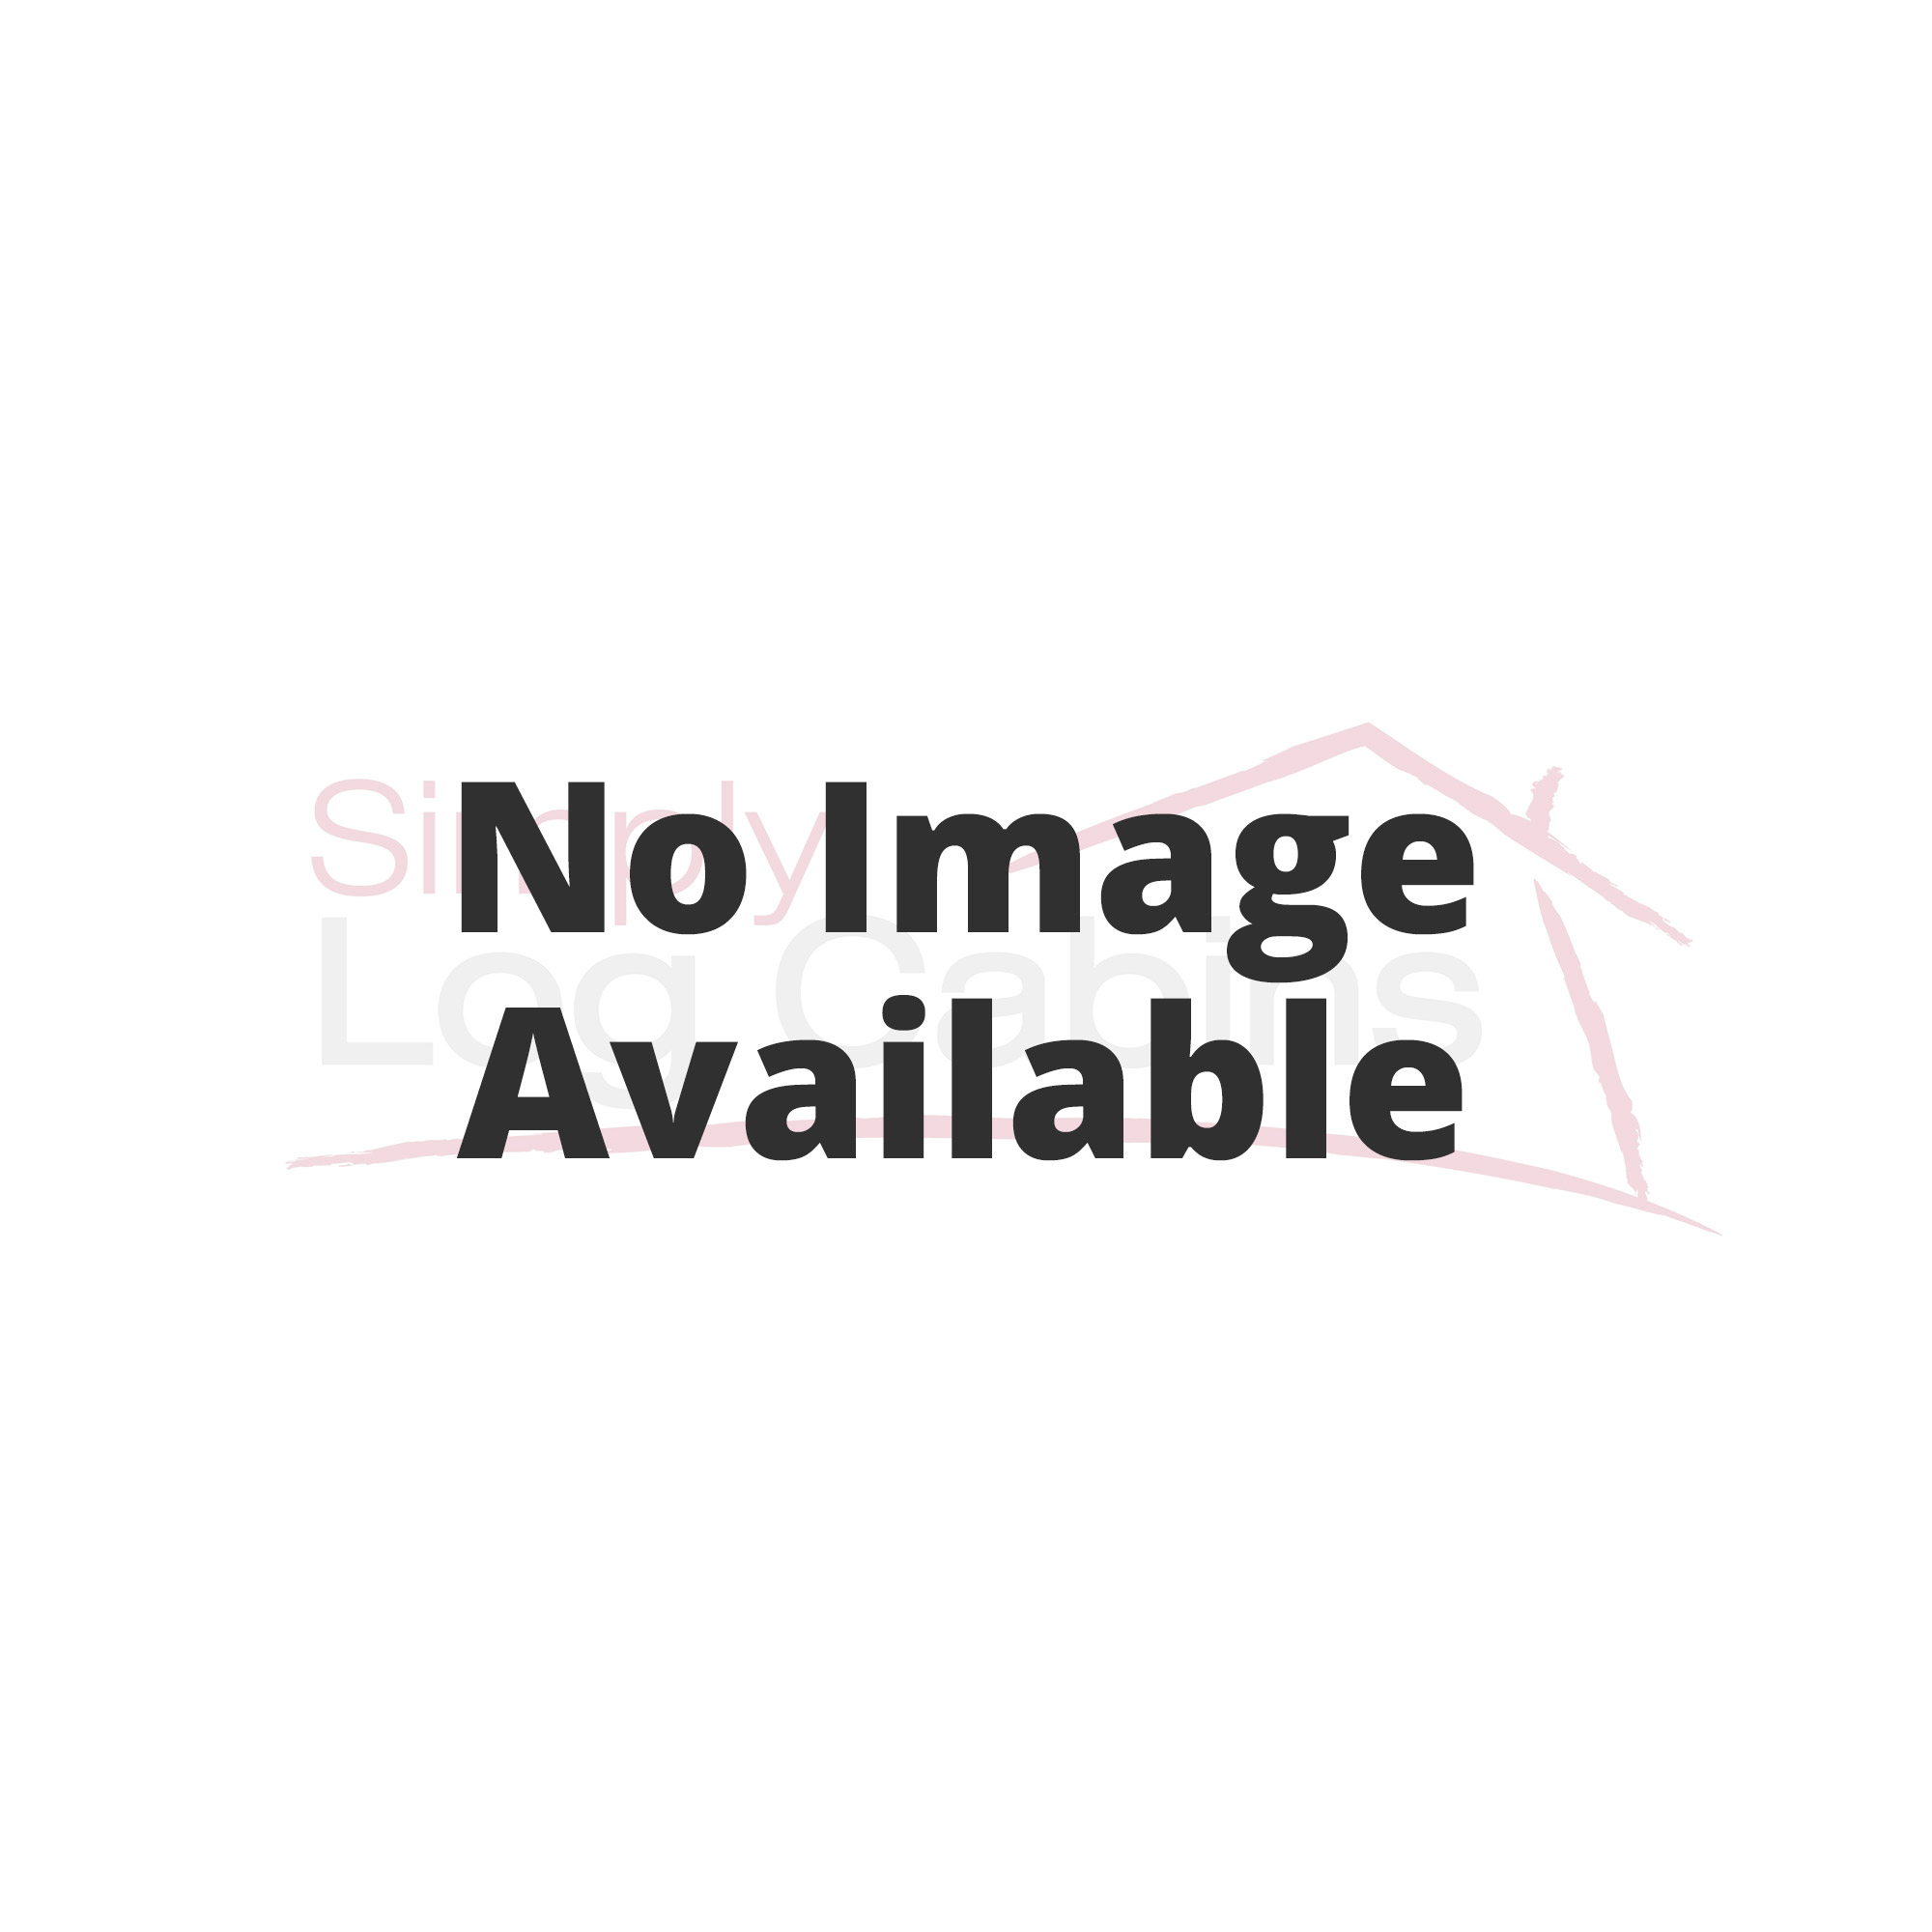 6 X 6 Flat Roof Carport: Gudrum Richard 1 Carport Featuring Arched Posts And